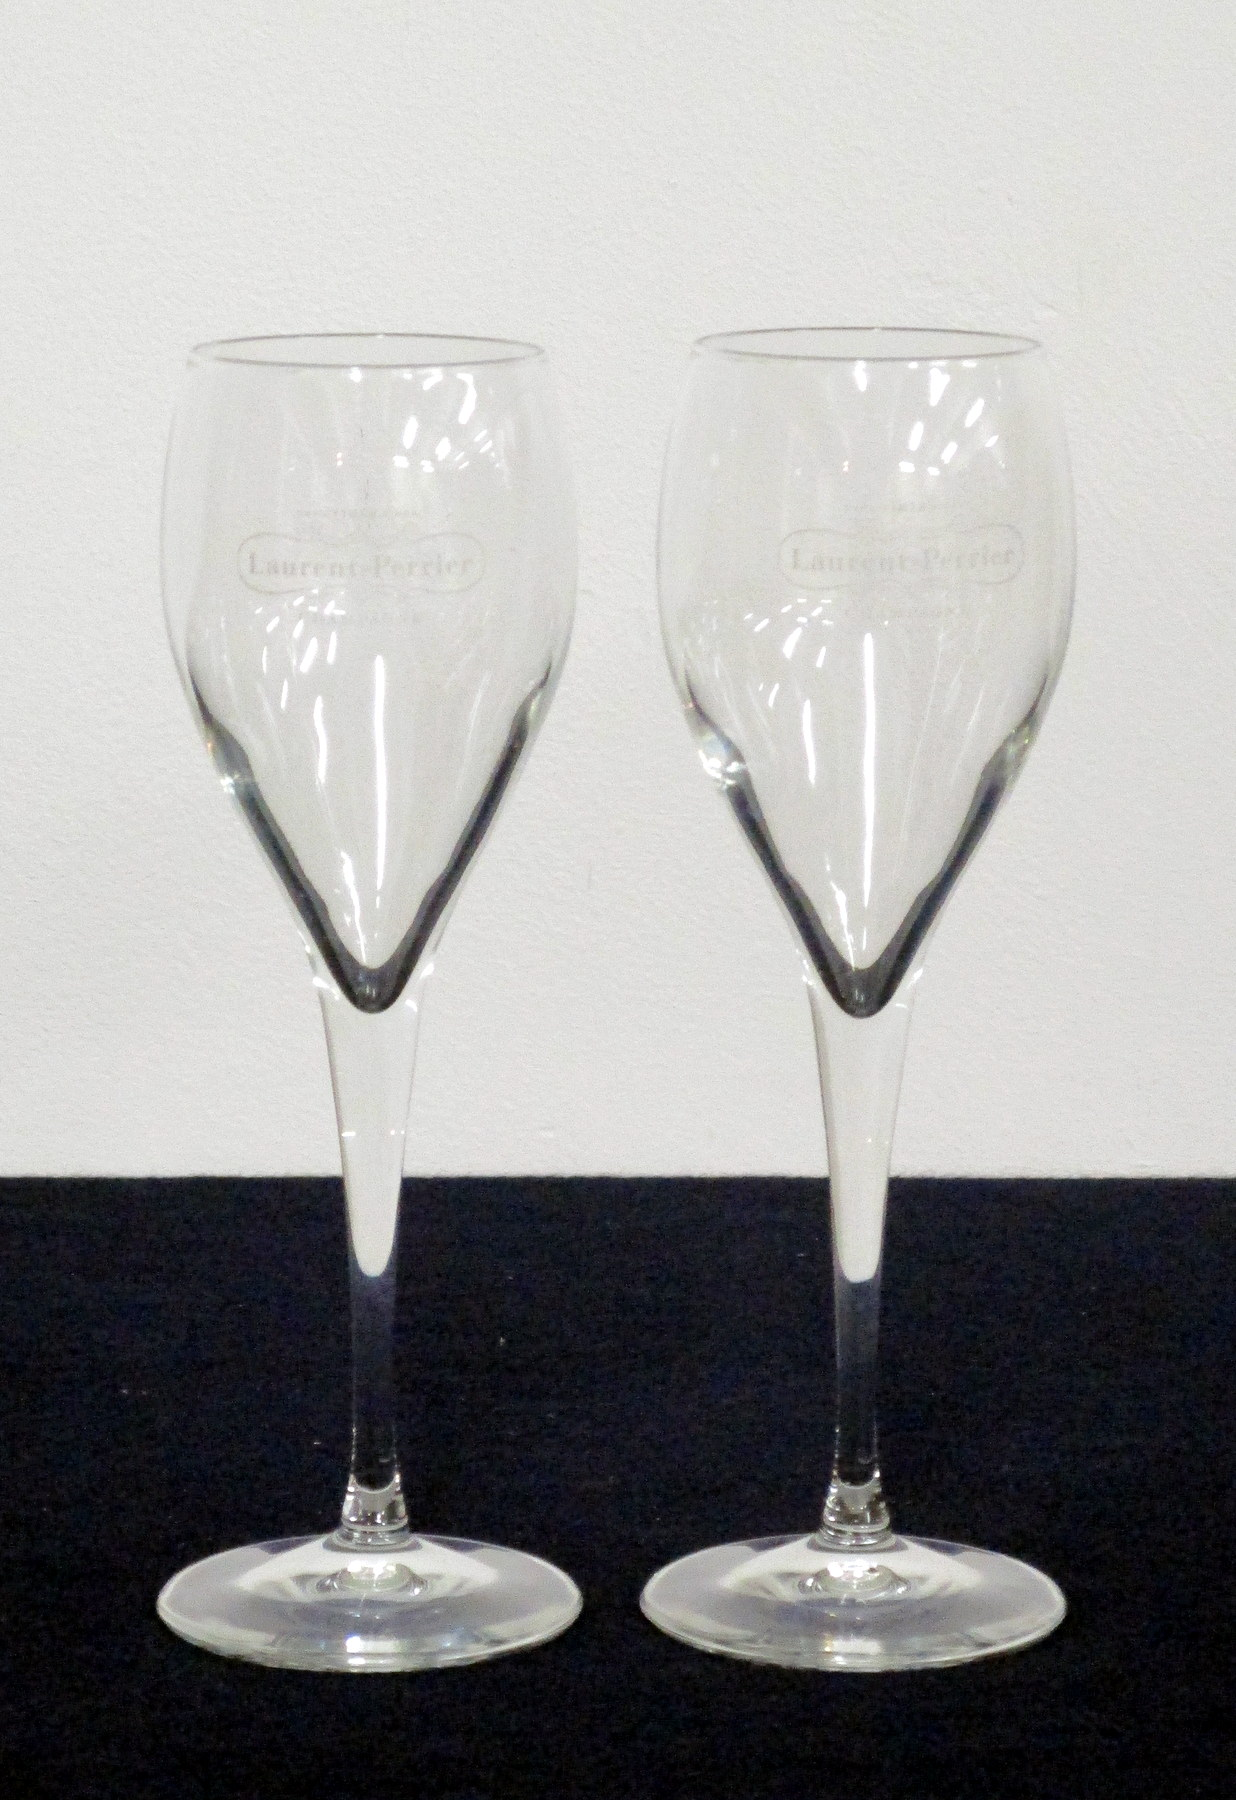 2 Champagne Flutes, Laurent Perrier etching